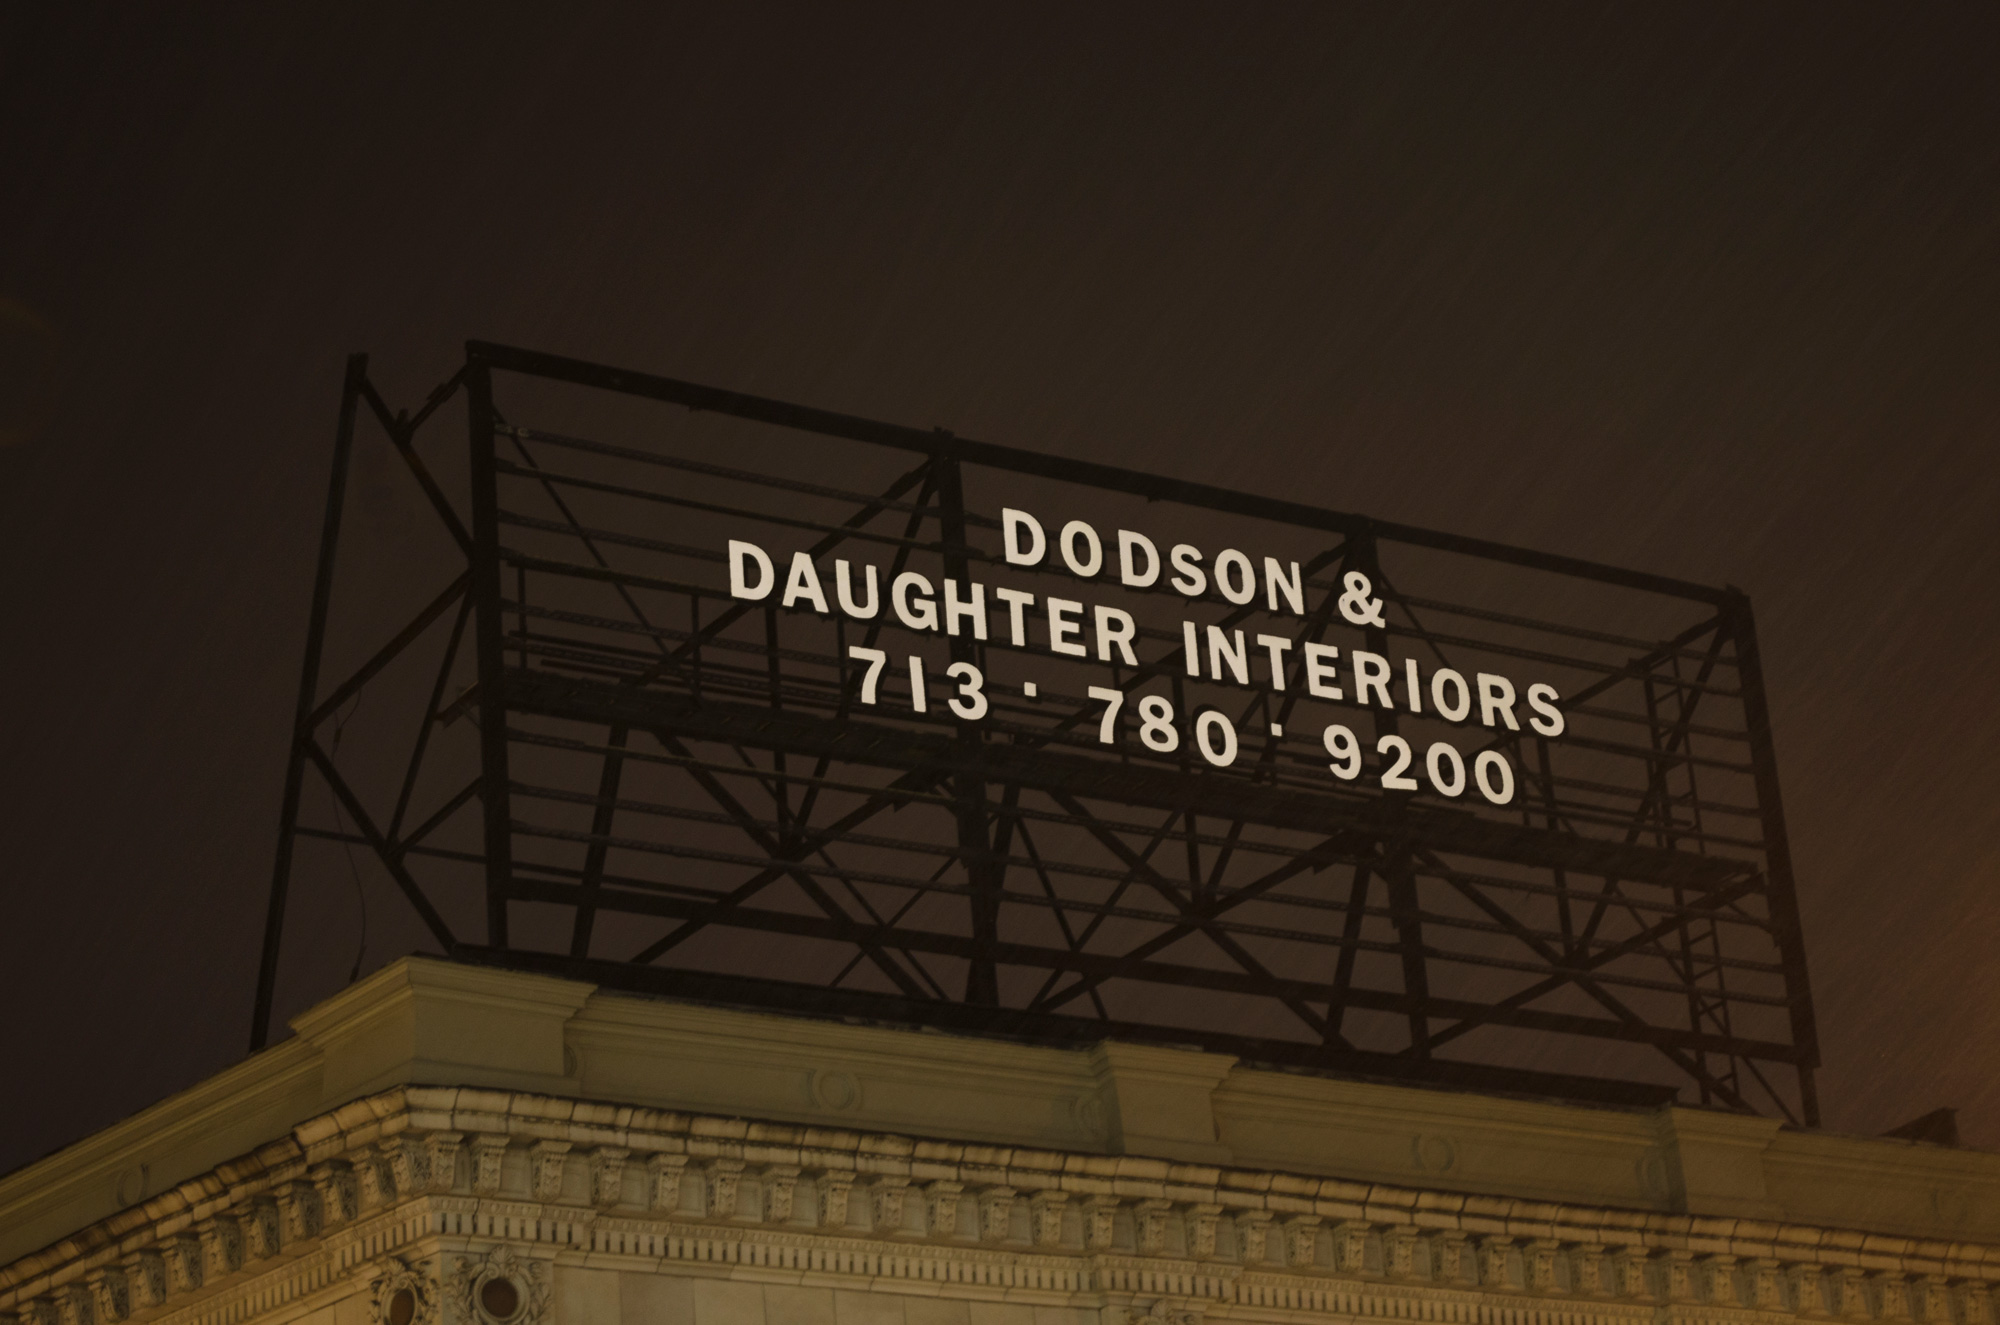 Dodson & Daughter Interiors